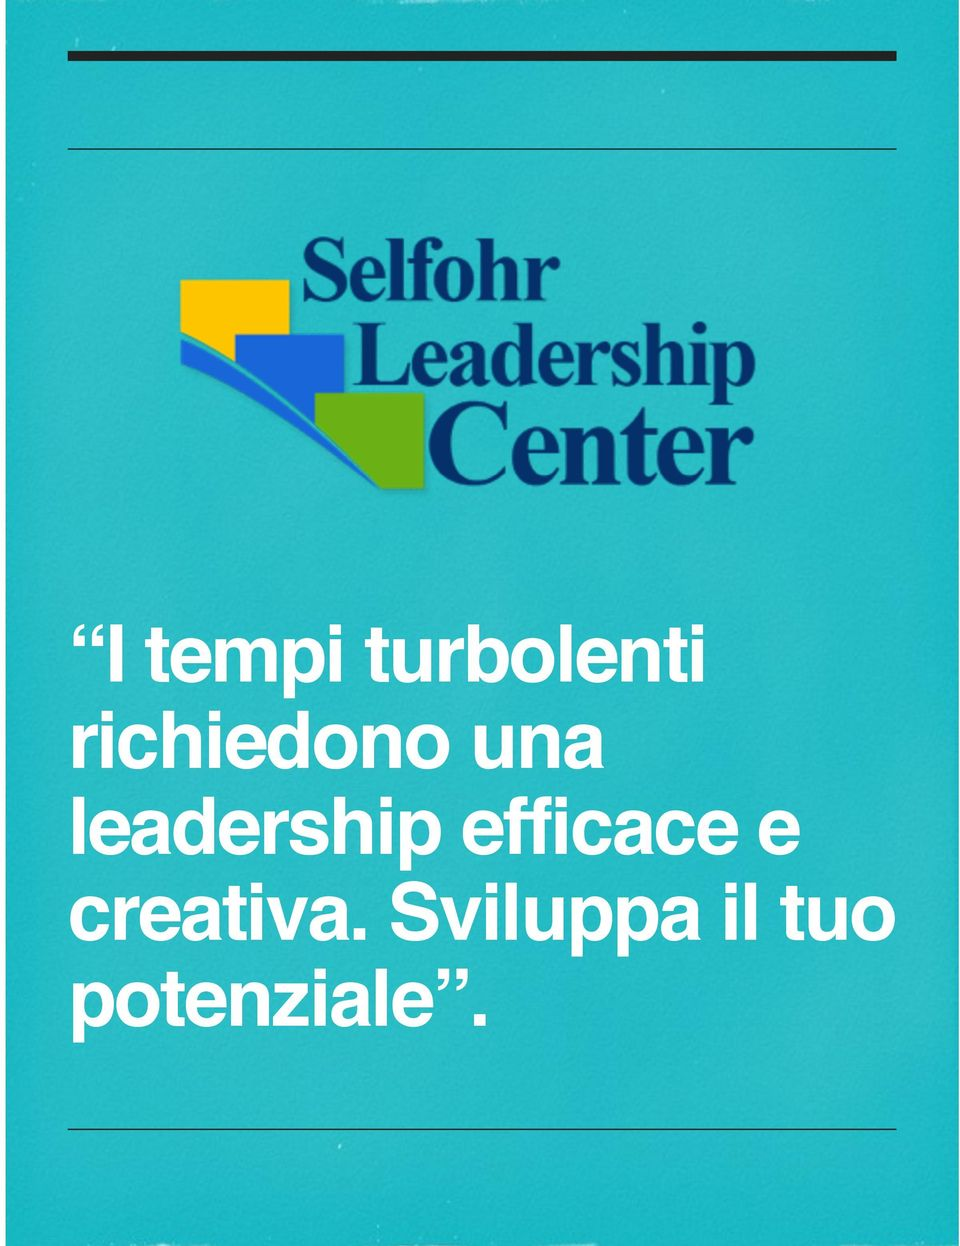 leadership efficace e